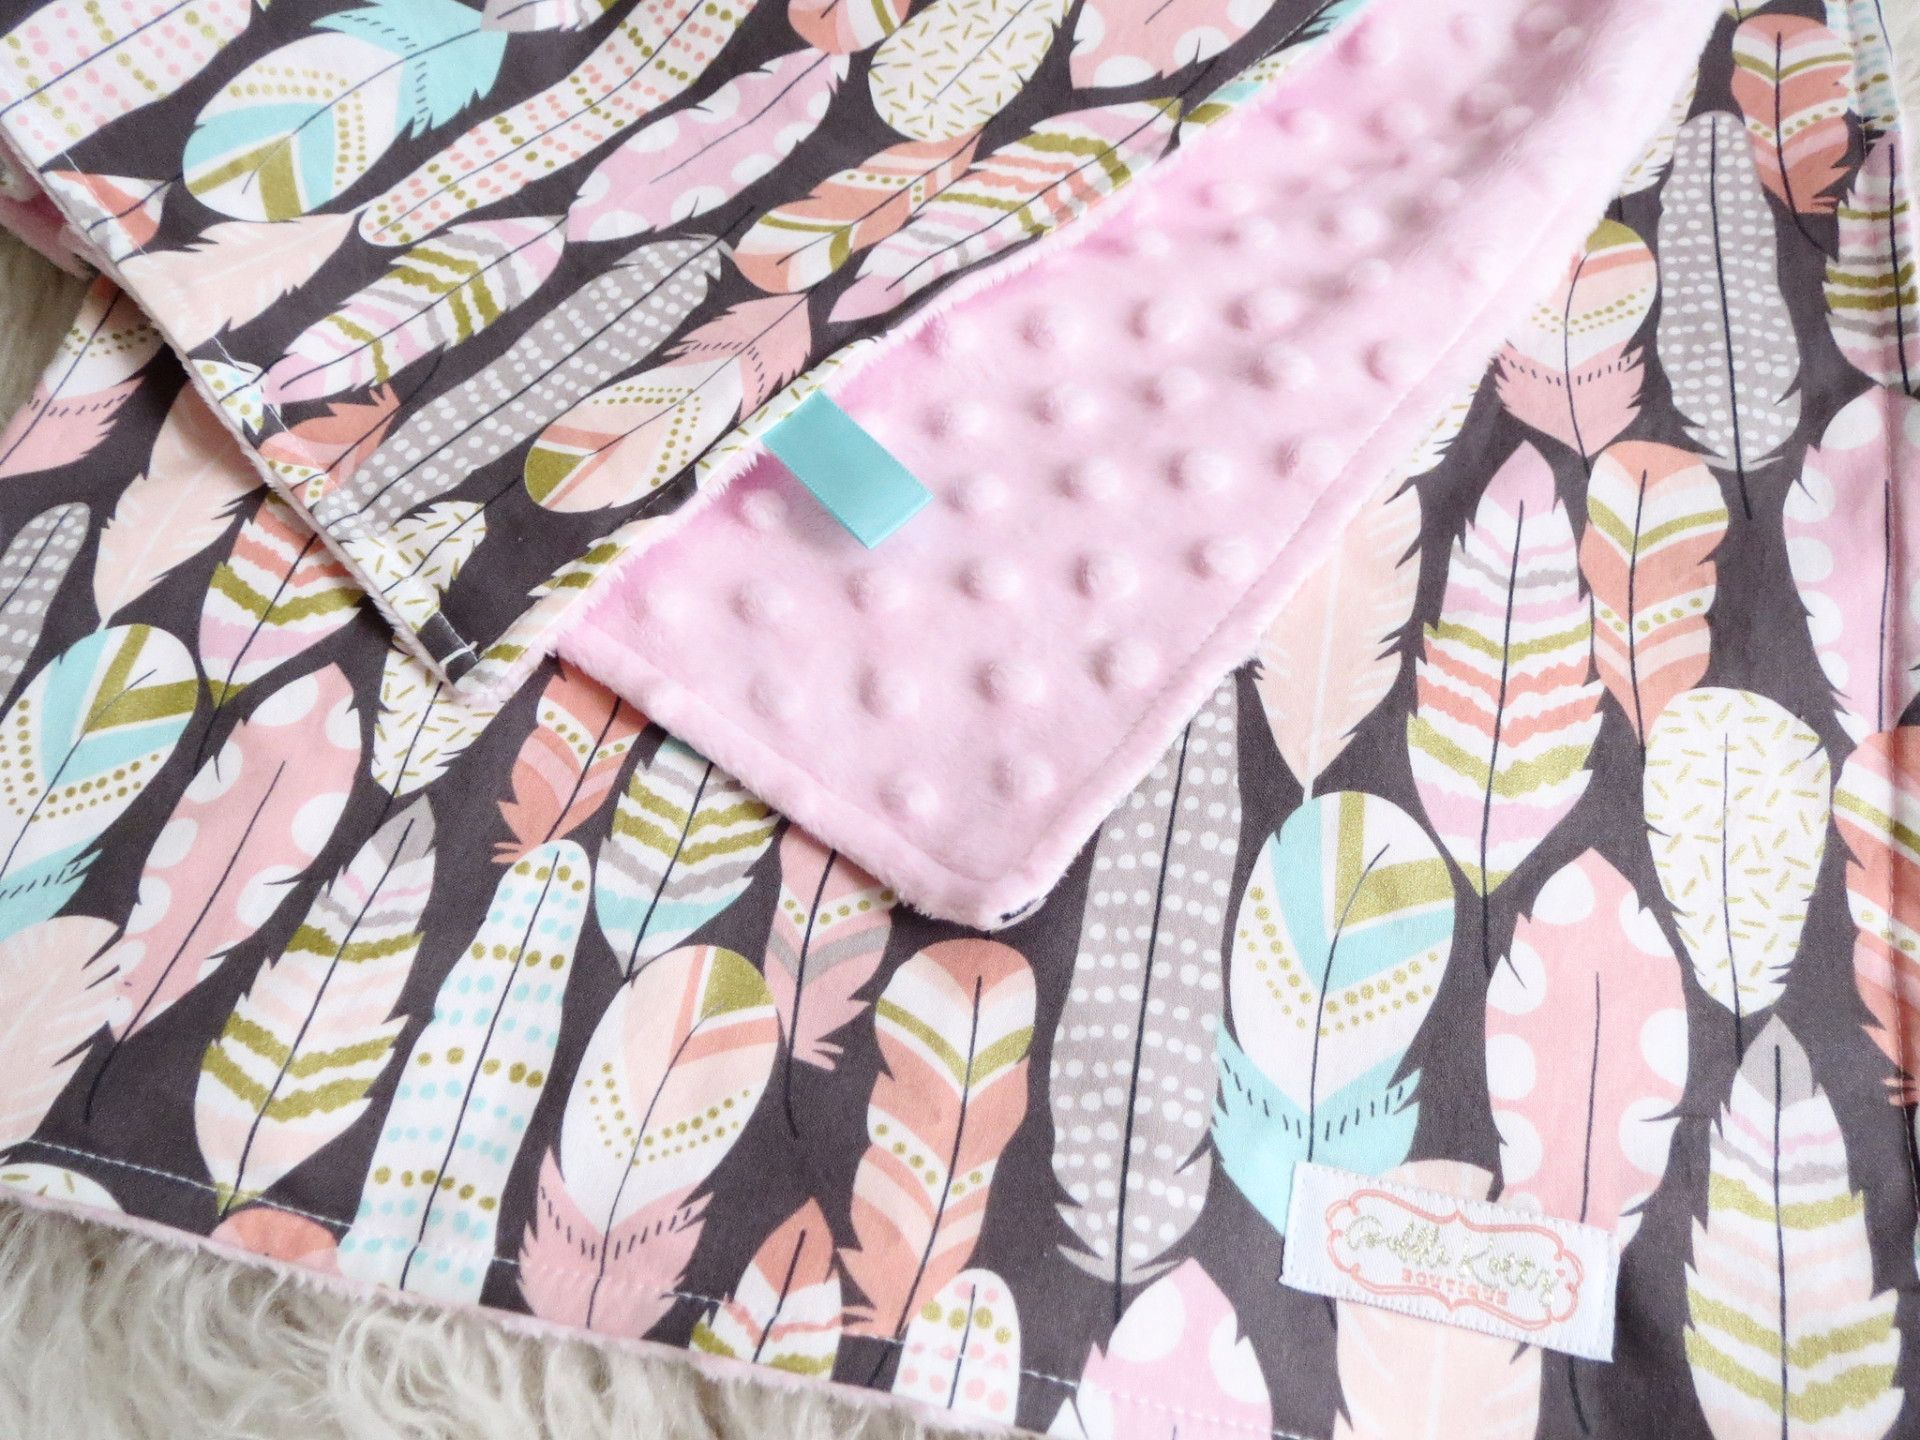 Baby Girl Is Sure To Snuggle With This Feather Baby Blanket For Years To Come Super Stylish And Modern Pink Minky Blanket With Feathers Is A Great Addition